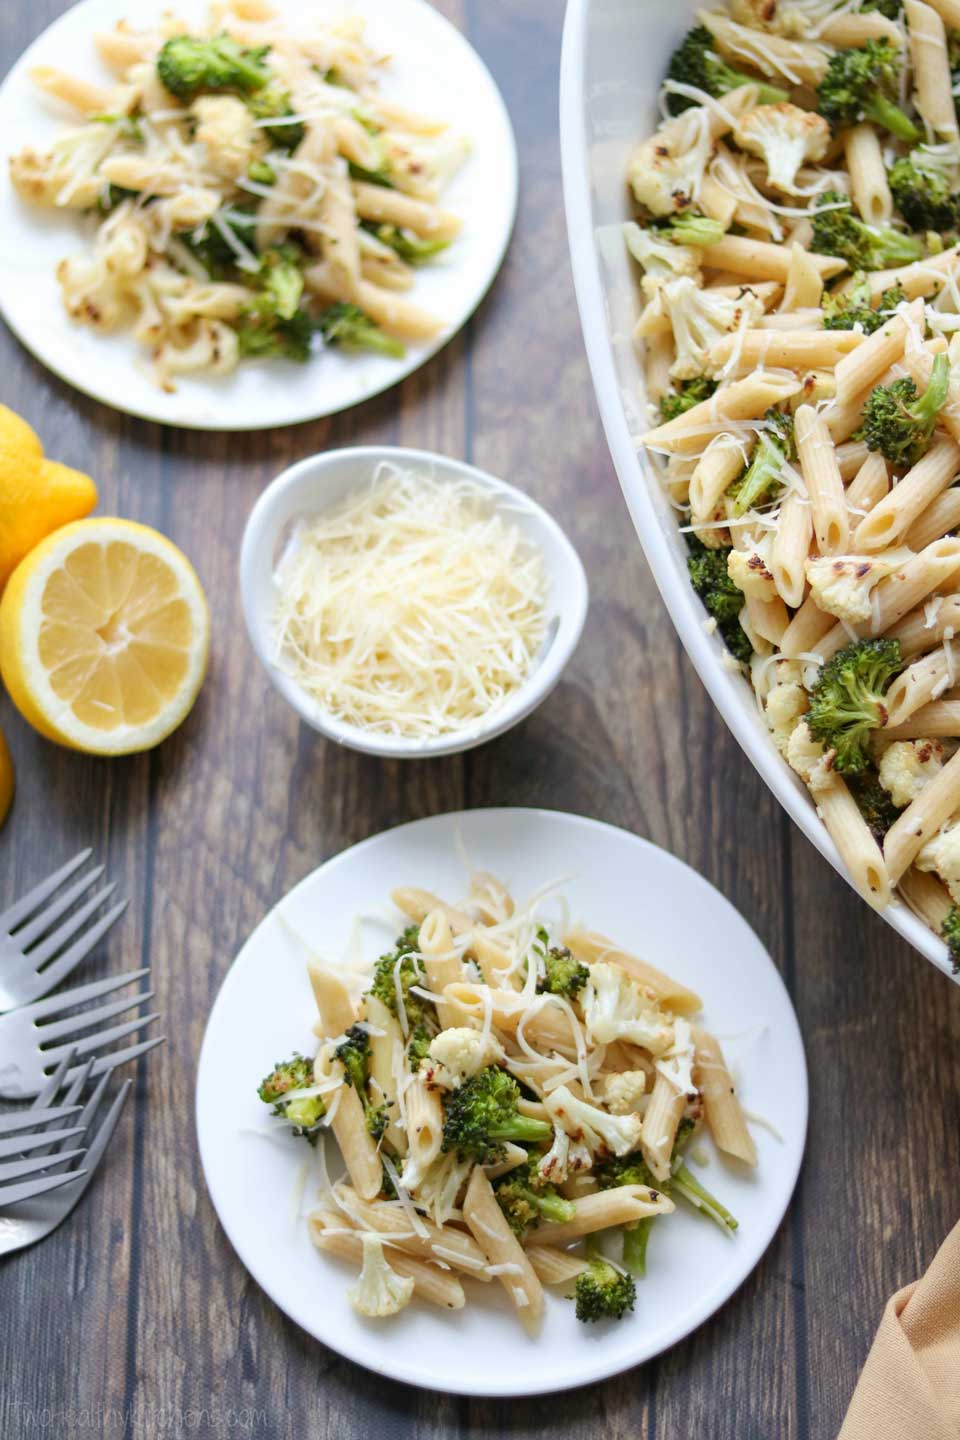 This scrumptious Roasted Broccoli and Cauliflower Pasta recipe has so much vegetable nutrition jammed into each delicious bite! With 16 whopping cups of cauliflower and broccoli, your vegetable side dish is already mixed into the main course! An easy meal-in-one!